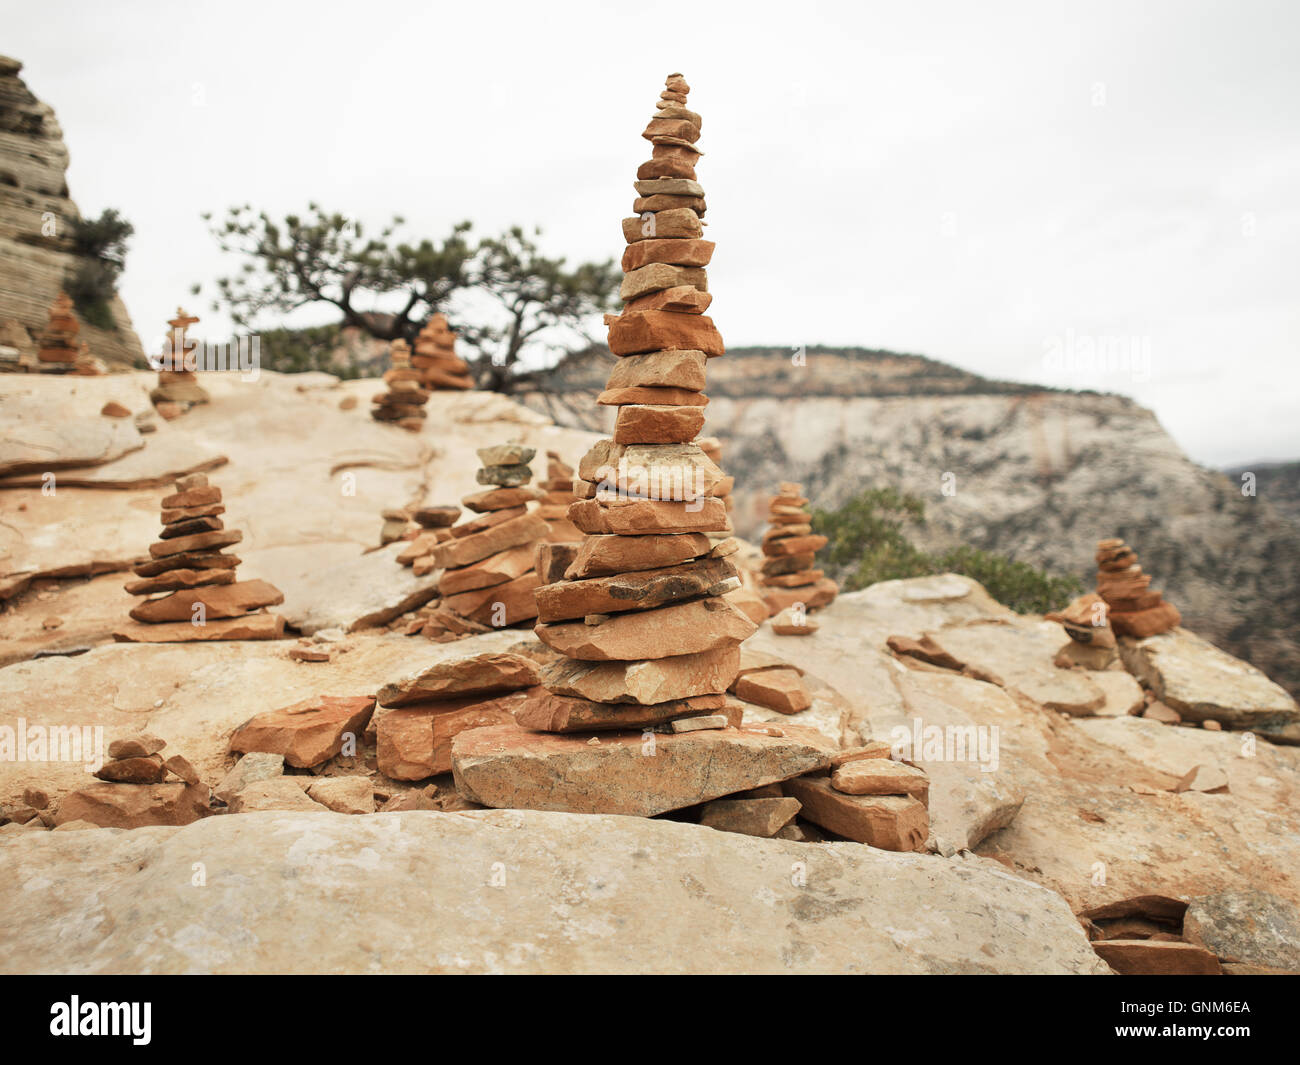 Stacks of rocks mark the trail for paths in Zion National Park and other hikes in southern Utah - Stock Image